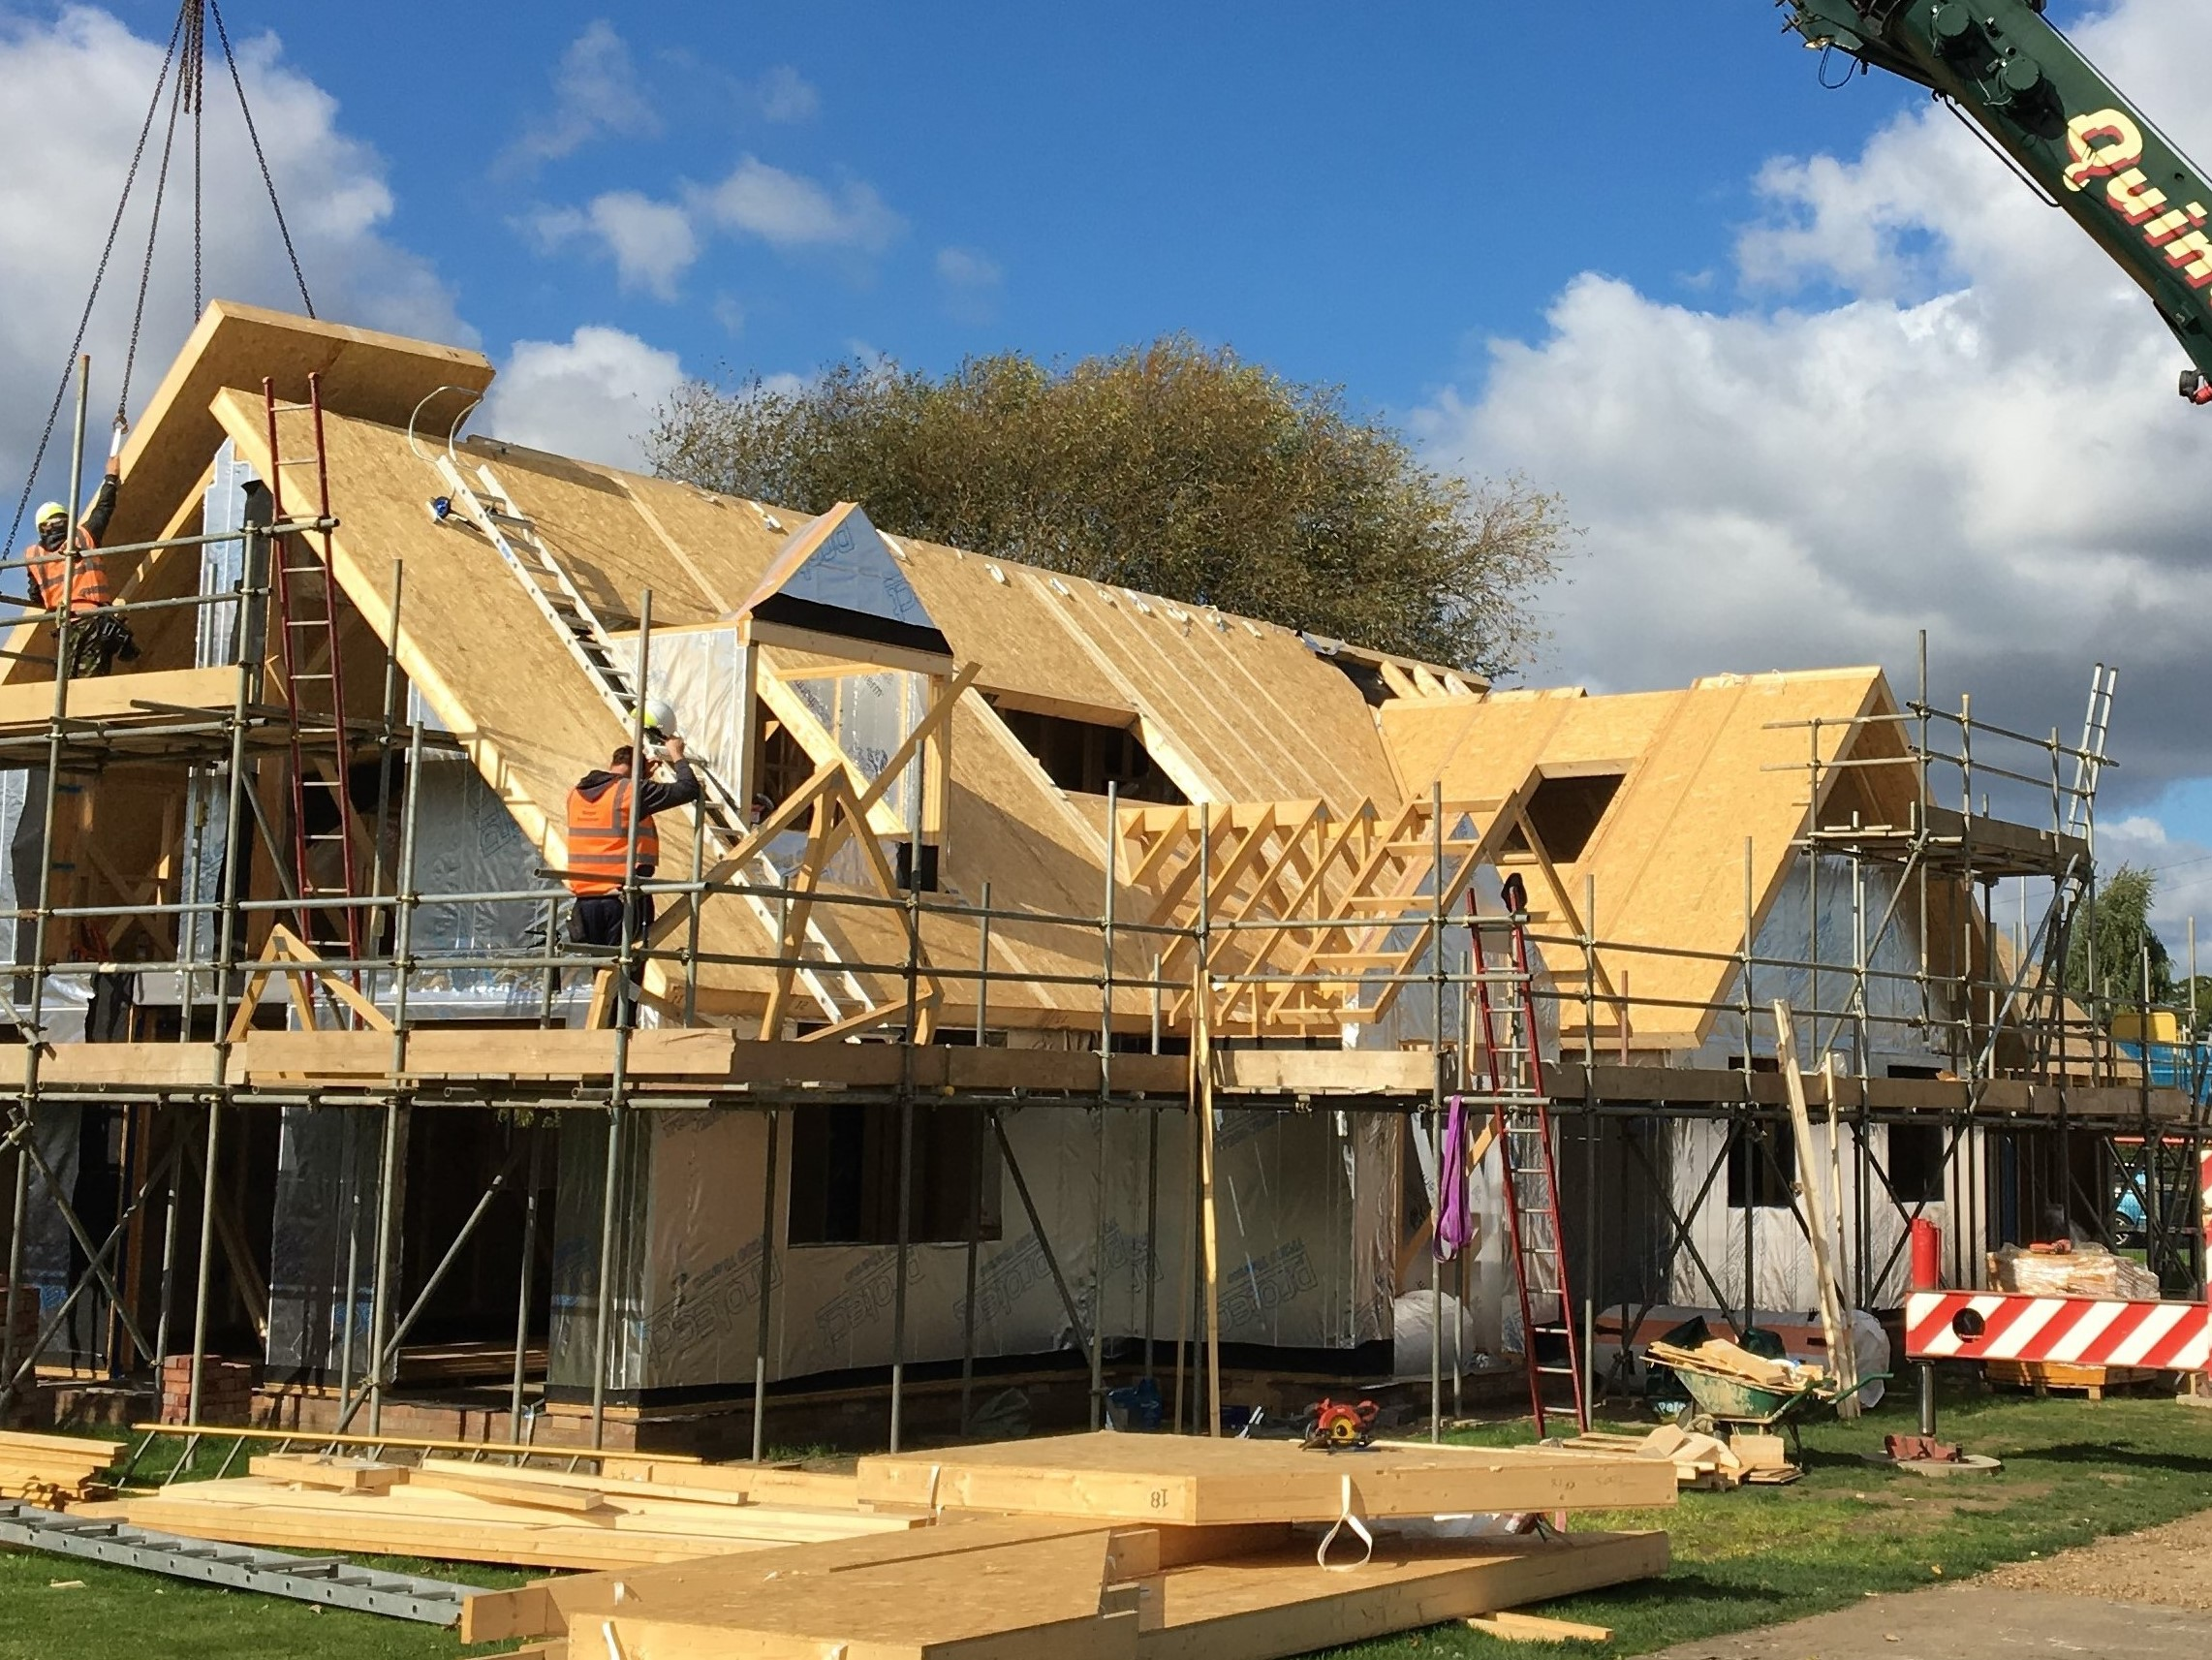 Kingspan Timber Solutions, Tempsford, Bedfordshire